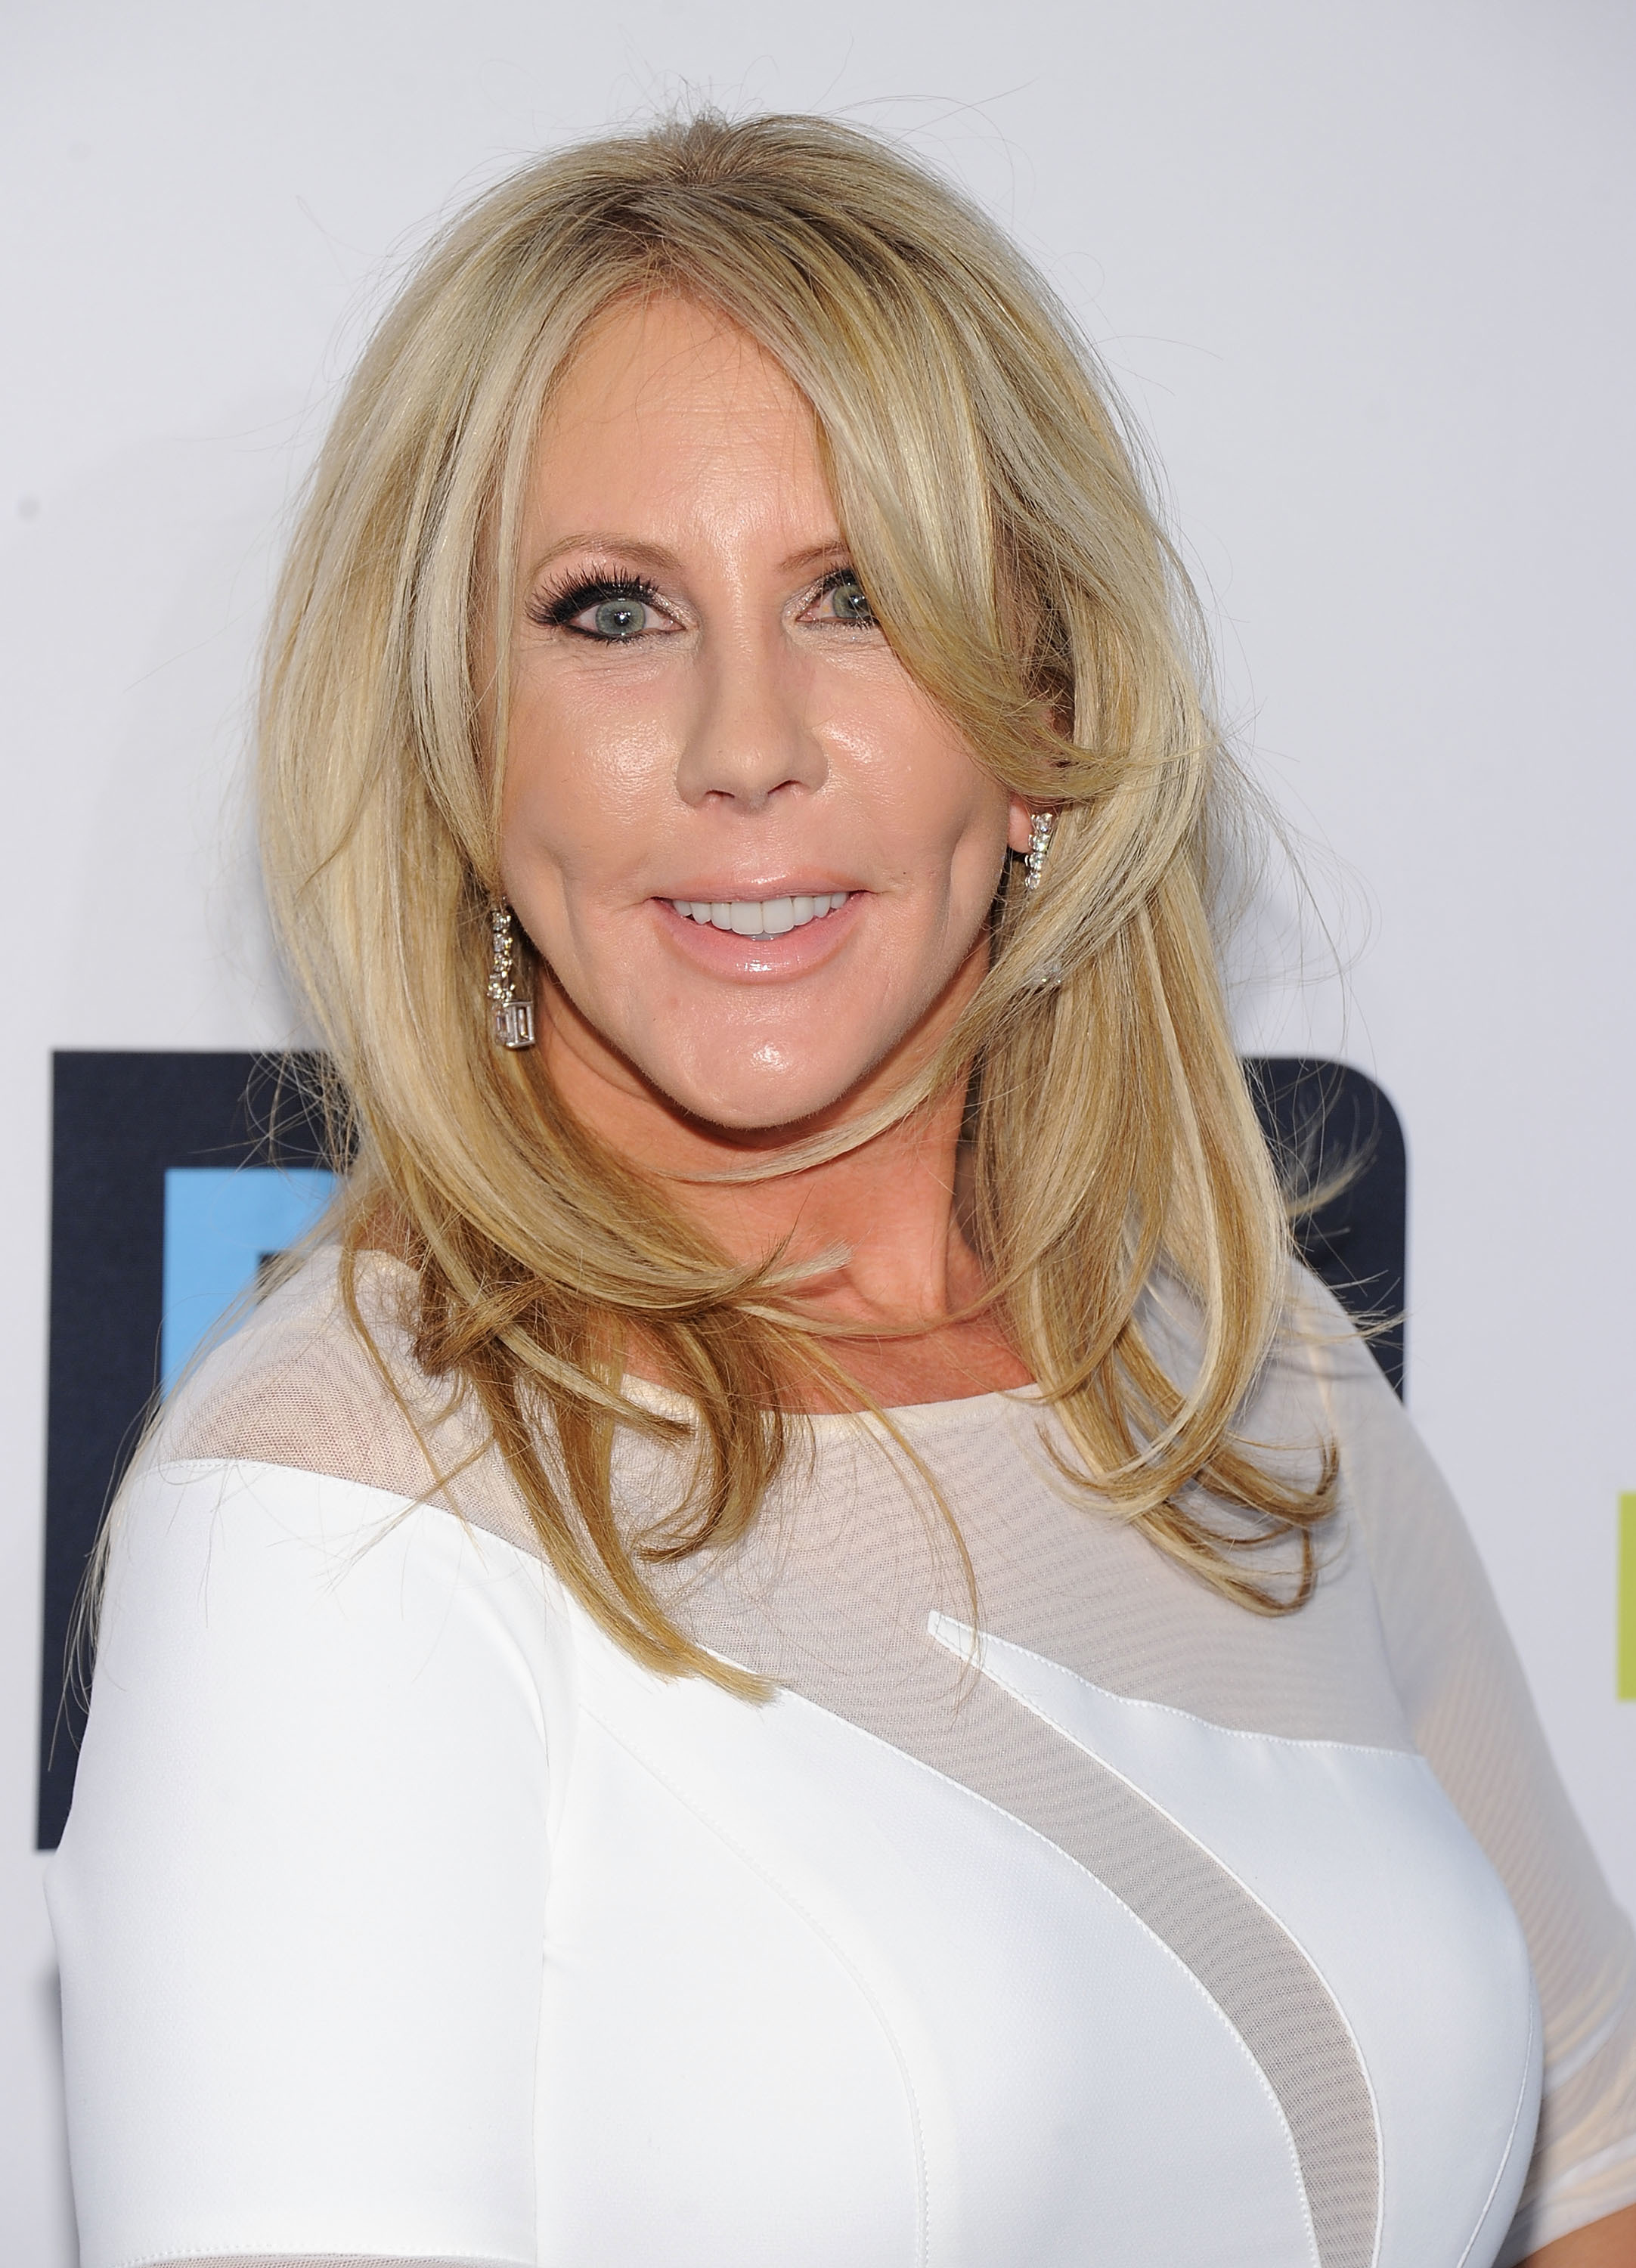 Vicki Gunvalson grandmother